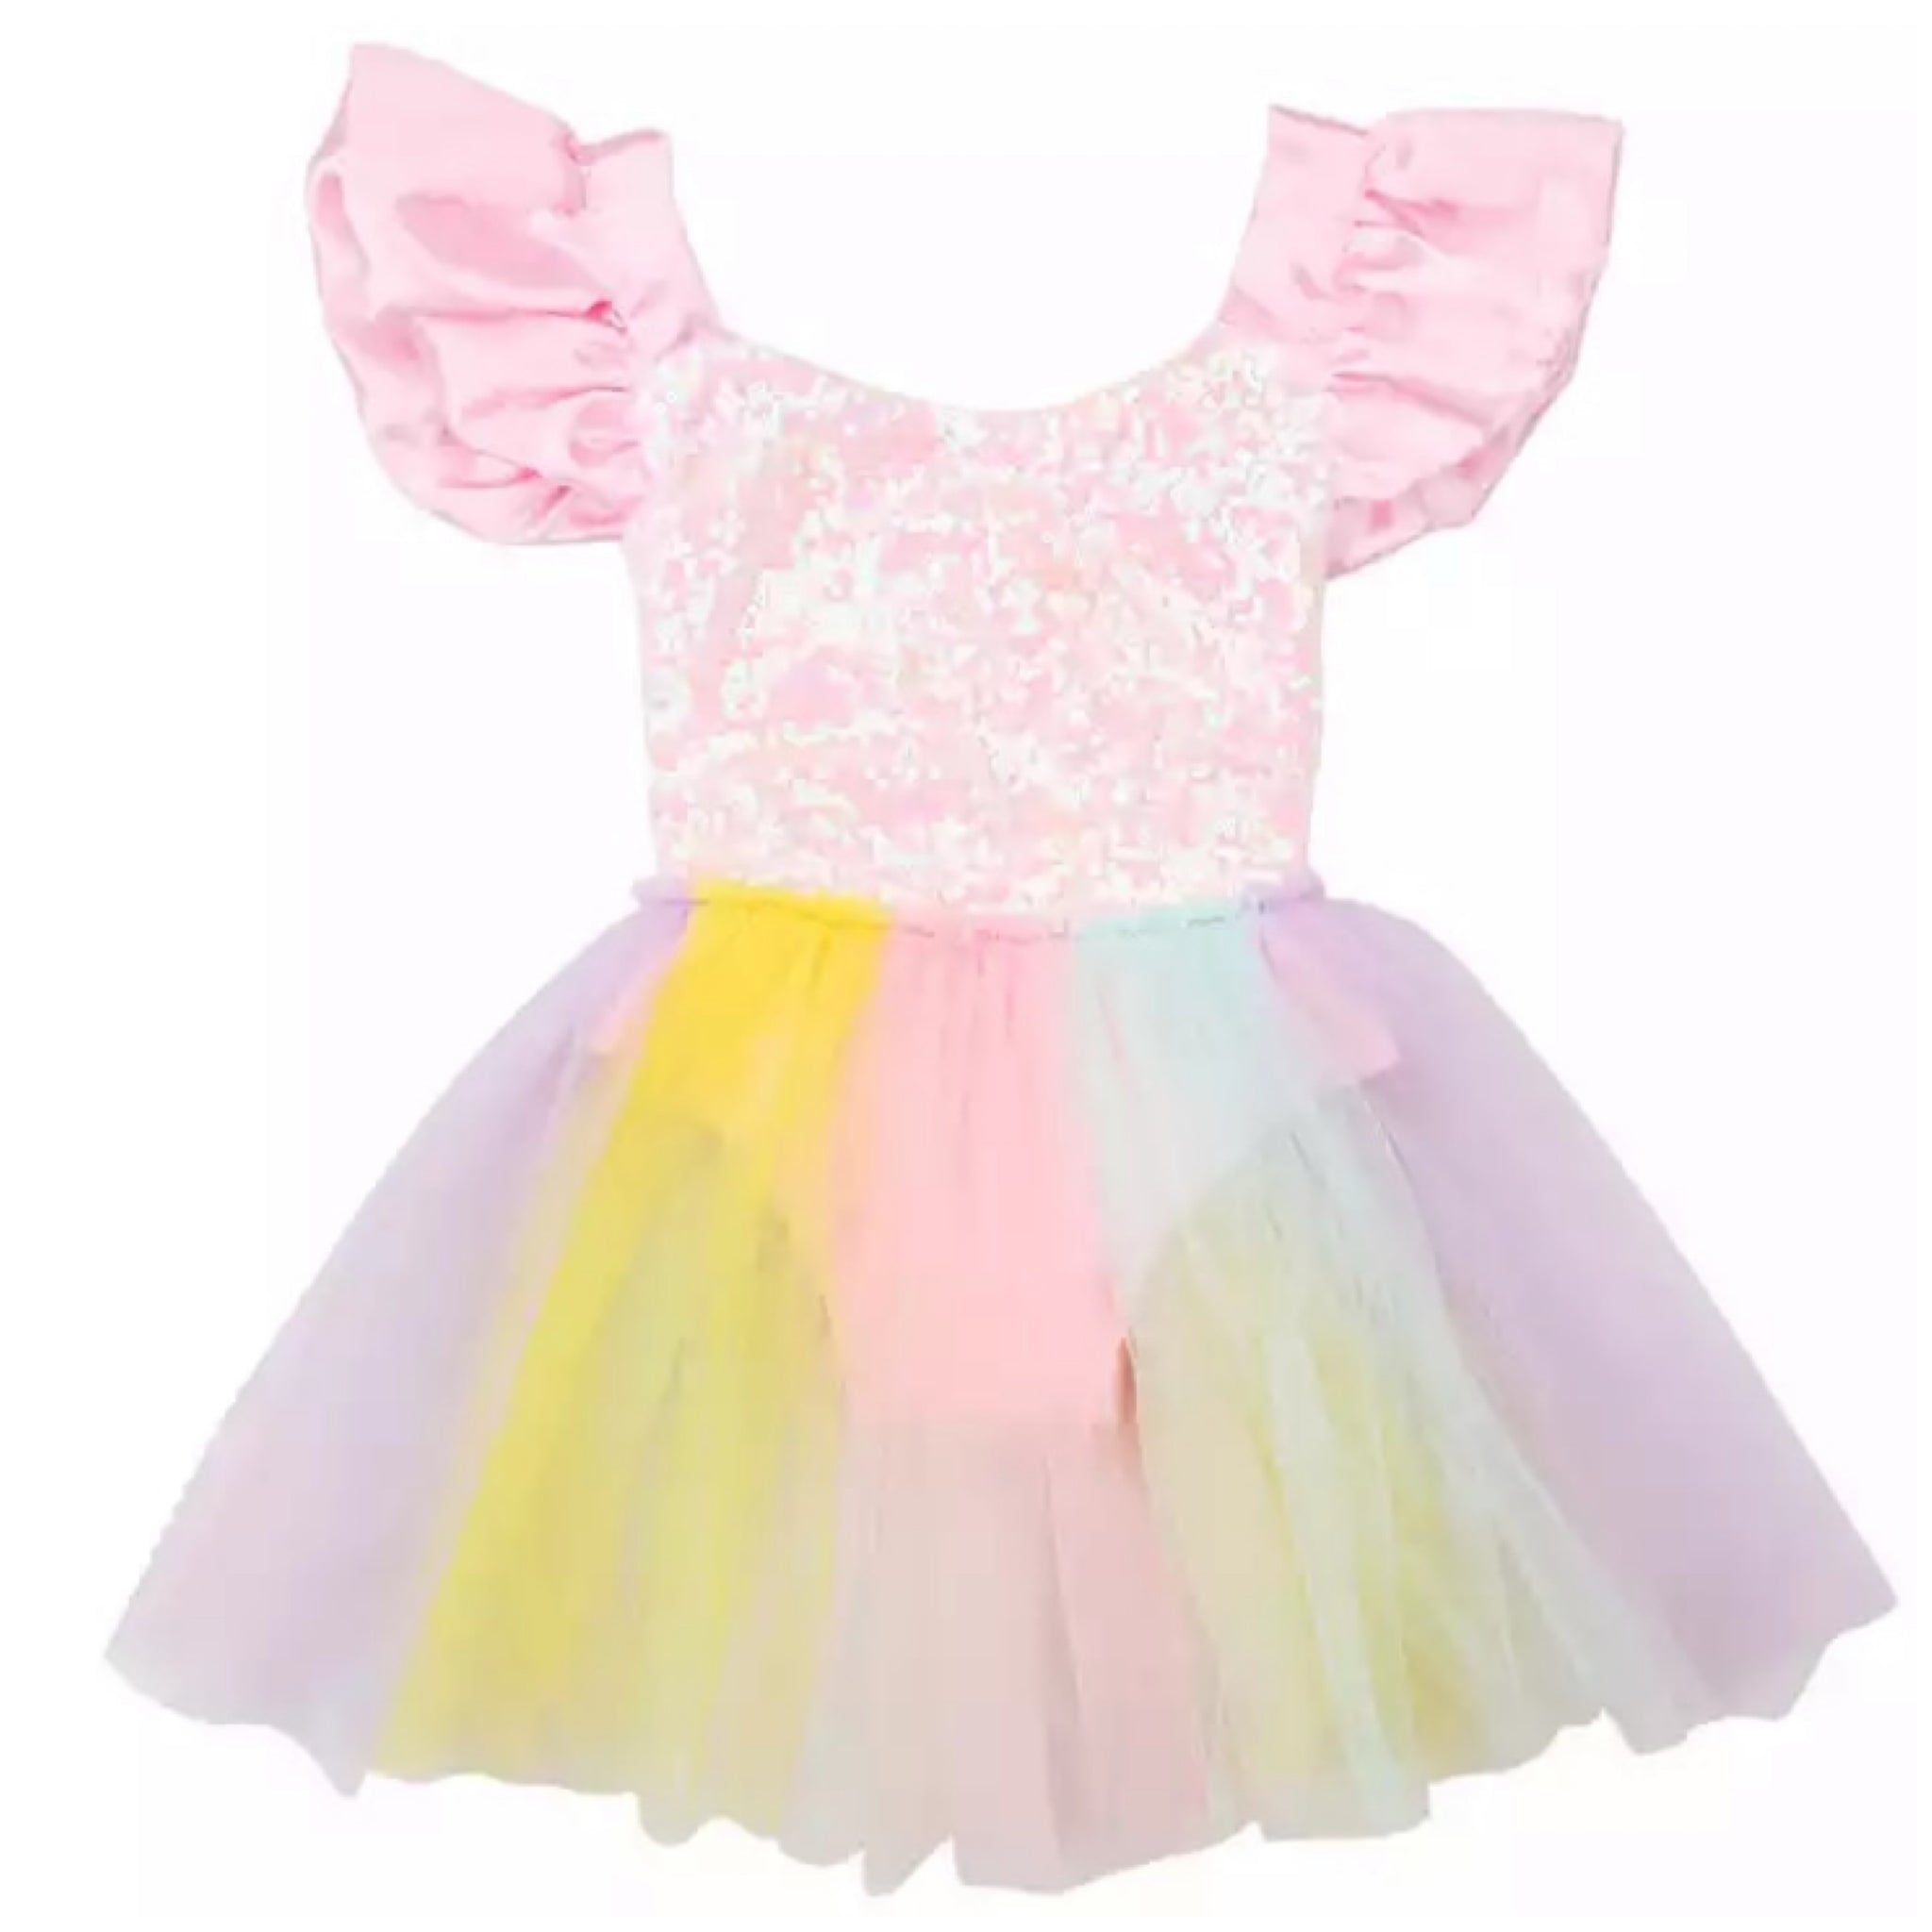 Rainbow-Sparkle-Kids-Dress